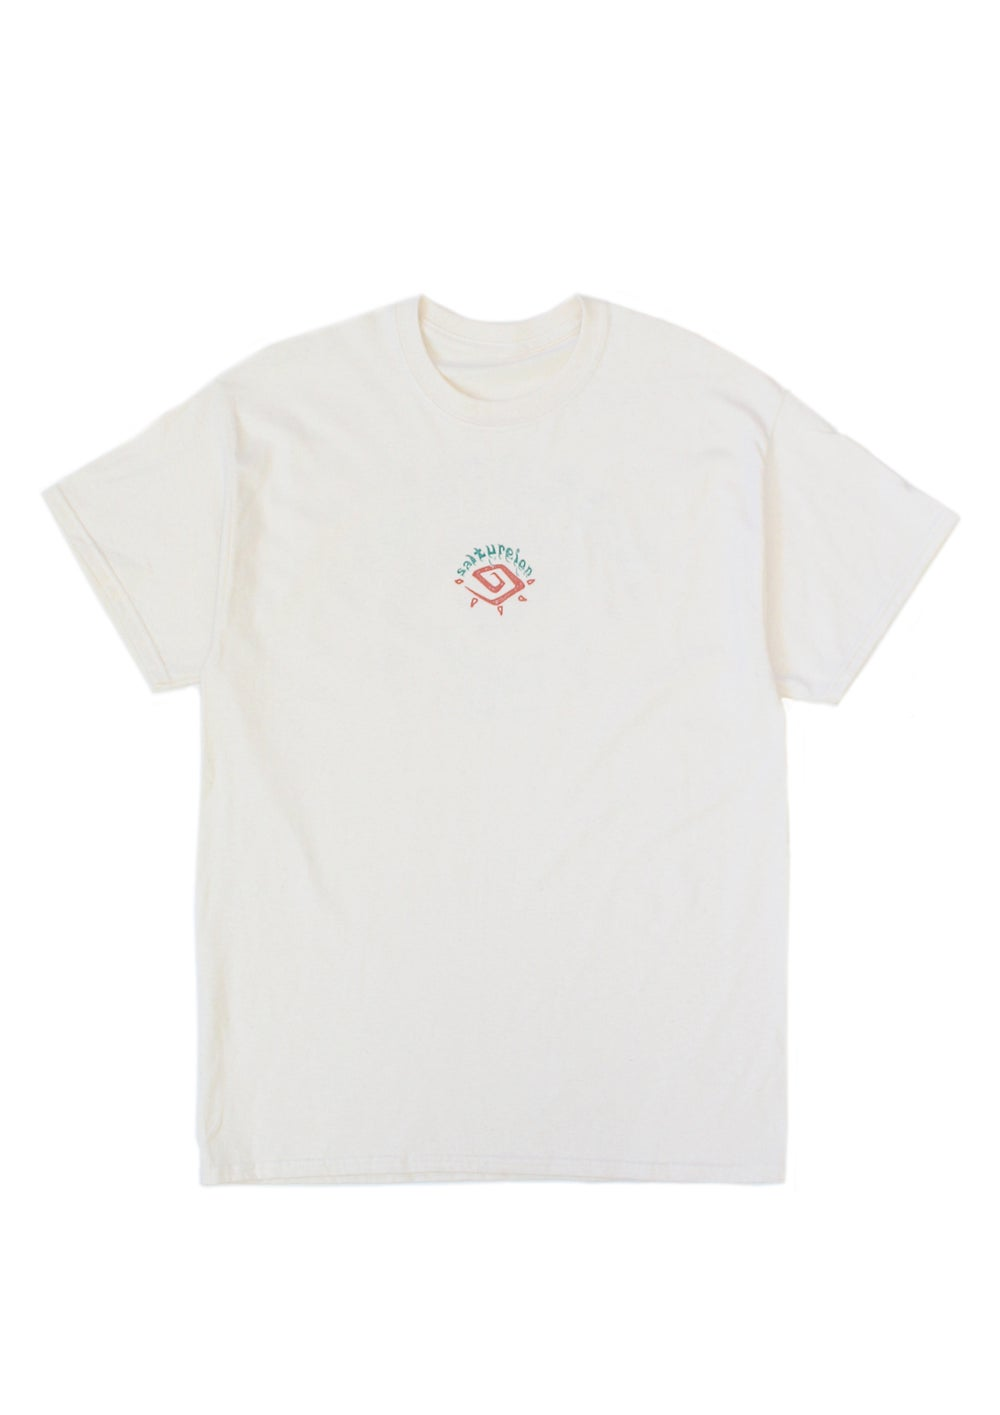 Image of Japan Tour Tee